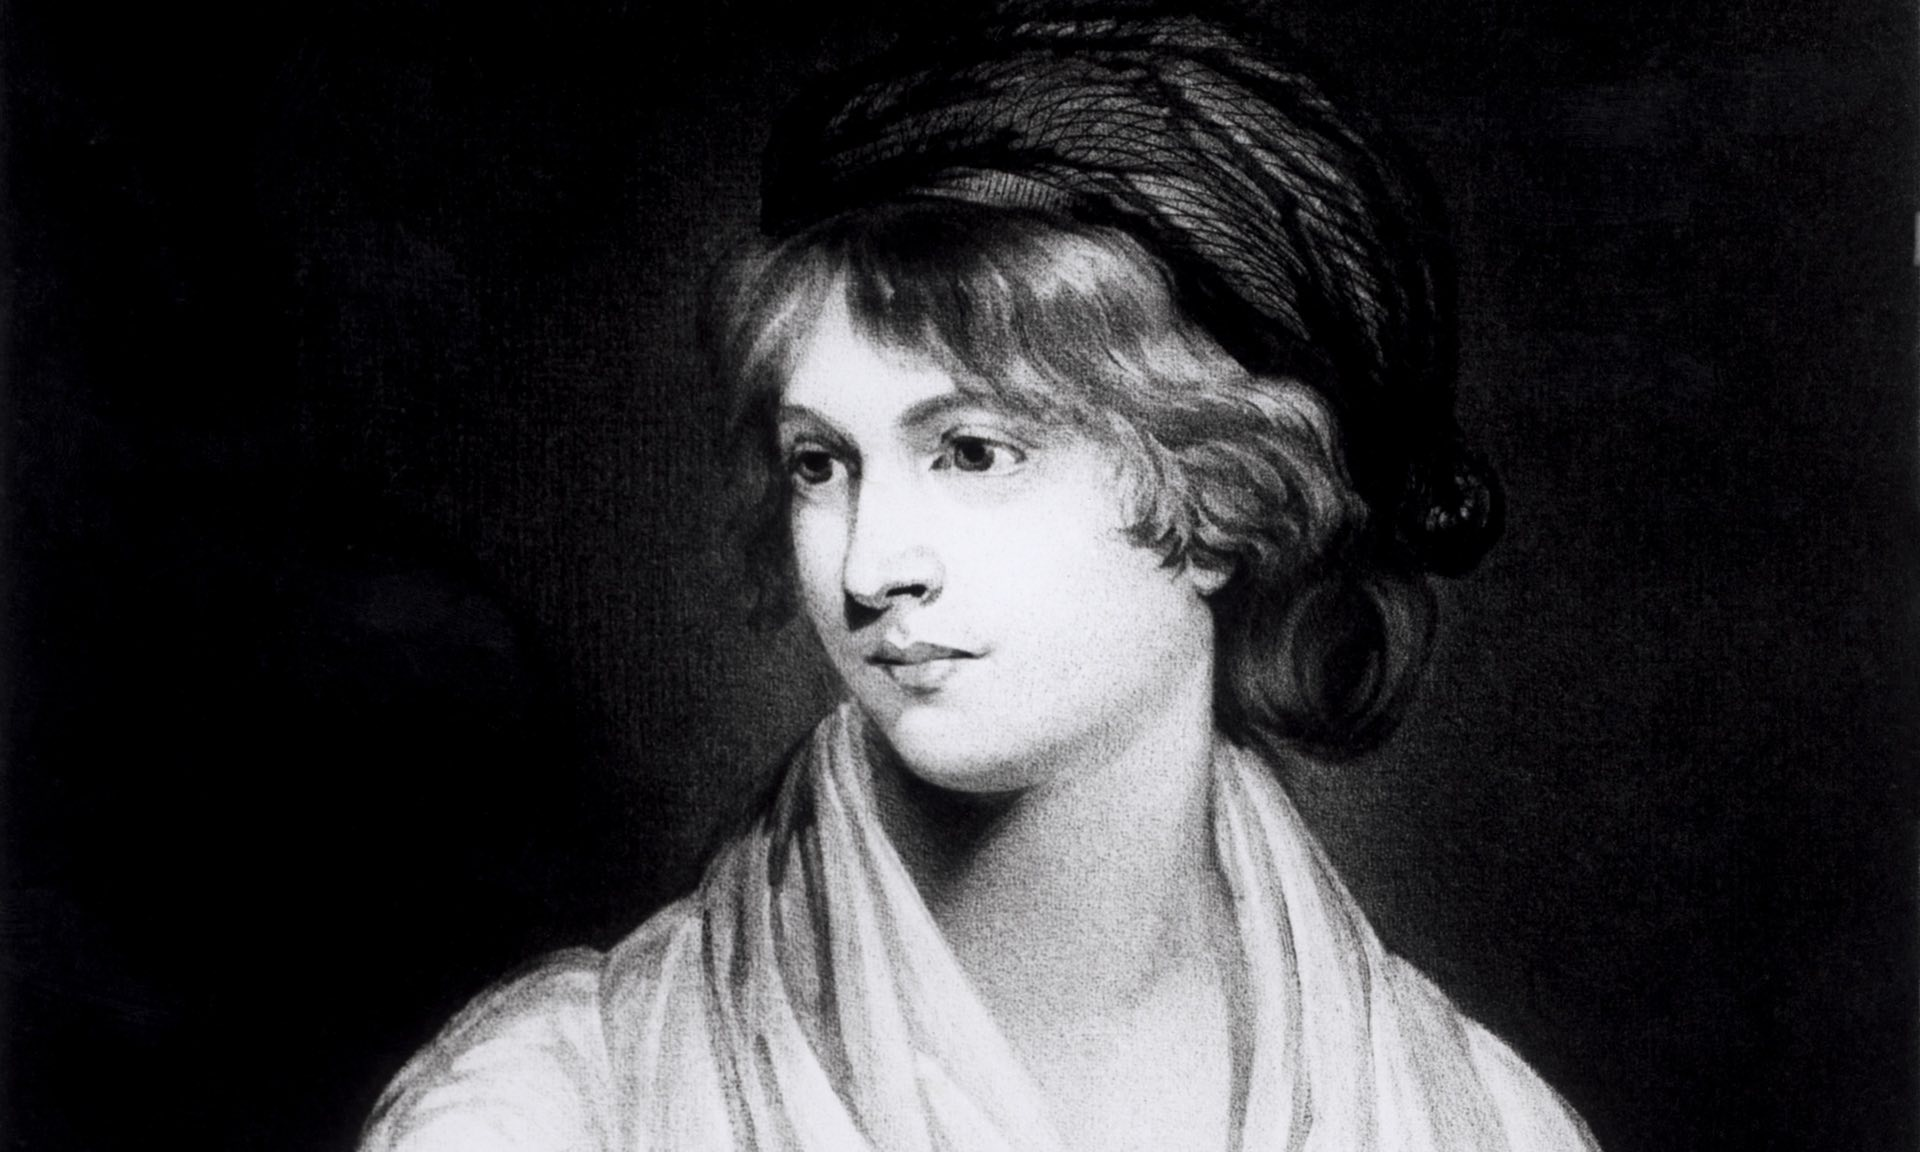 #anonymouswasawoman: #HERstory: The original suffragette: the extraordinary Mary Wollstonecraft